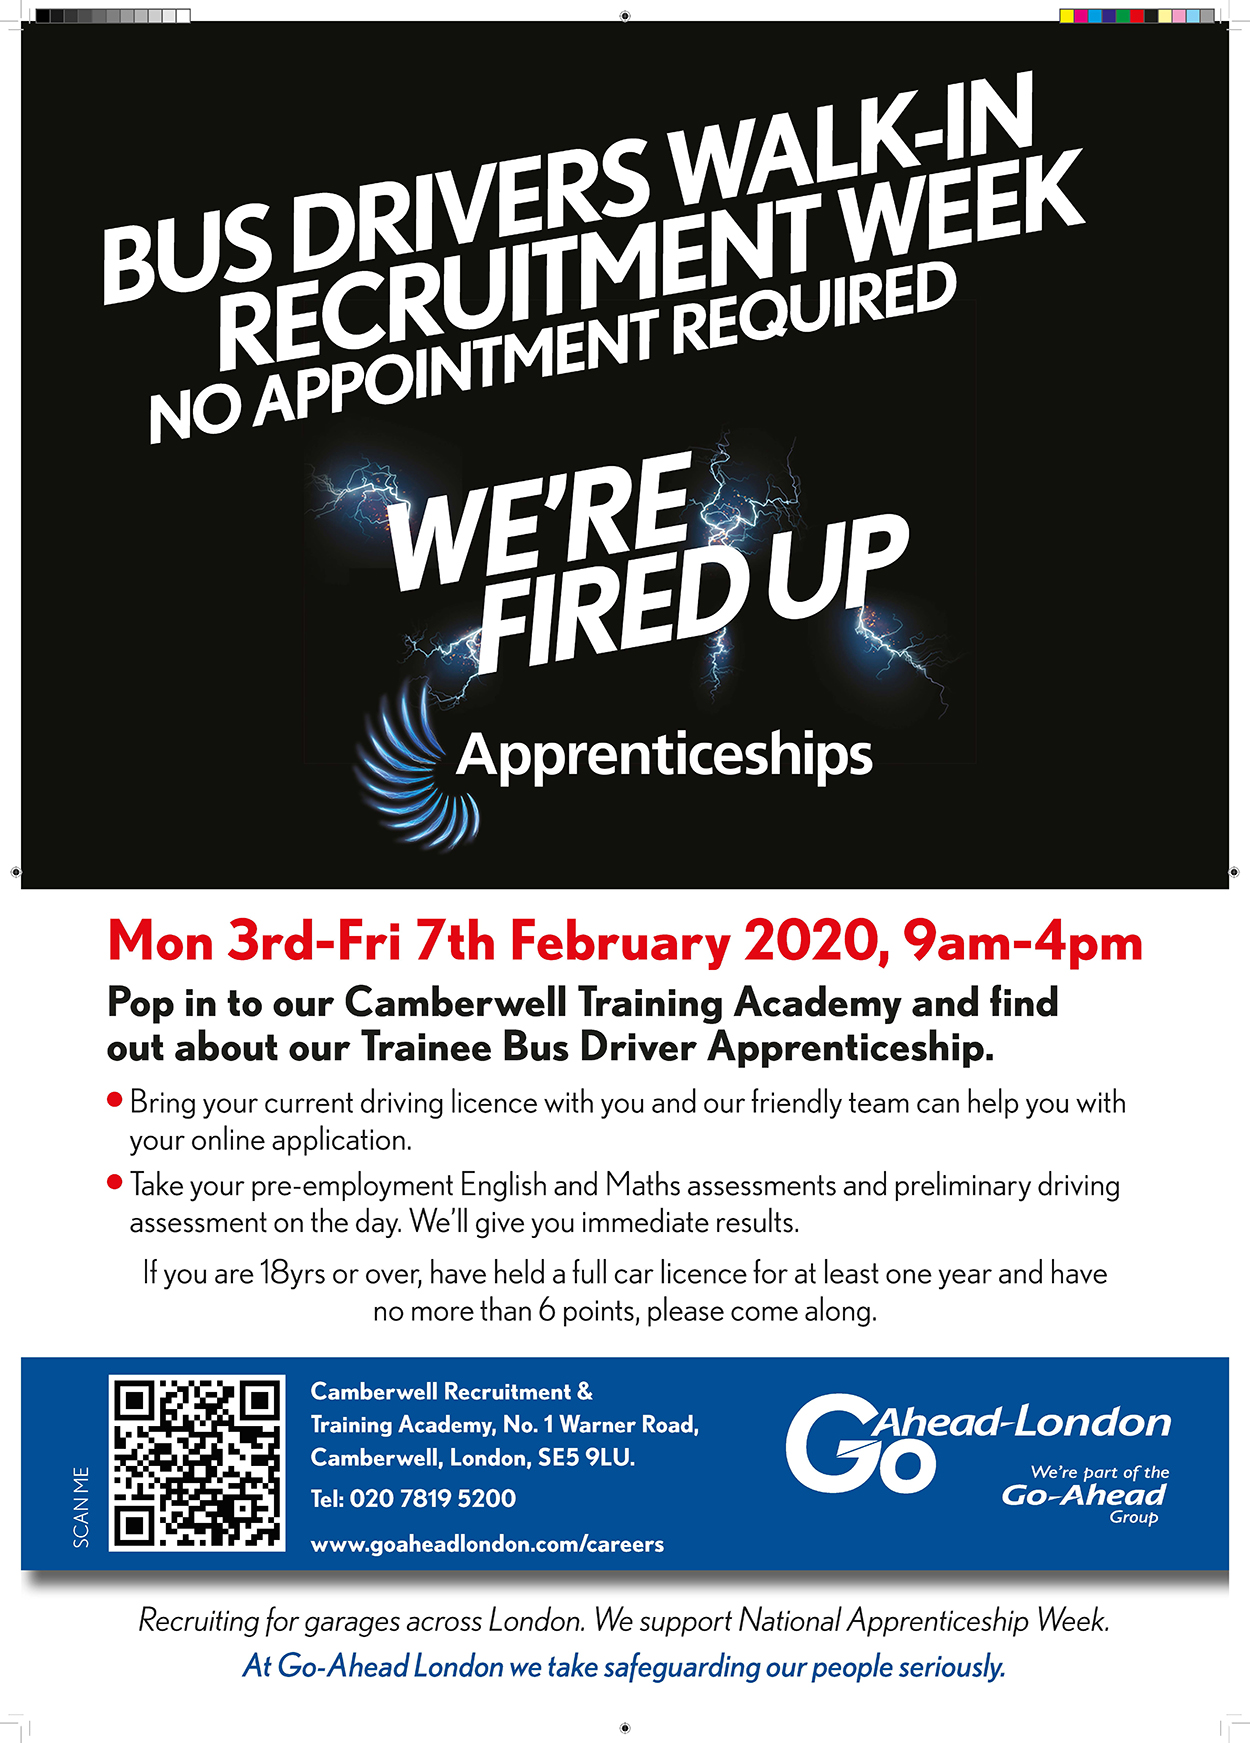 Apprenticeship Recruitment Week